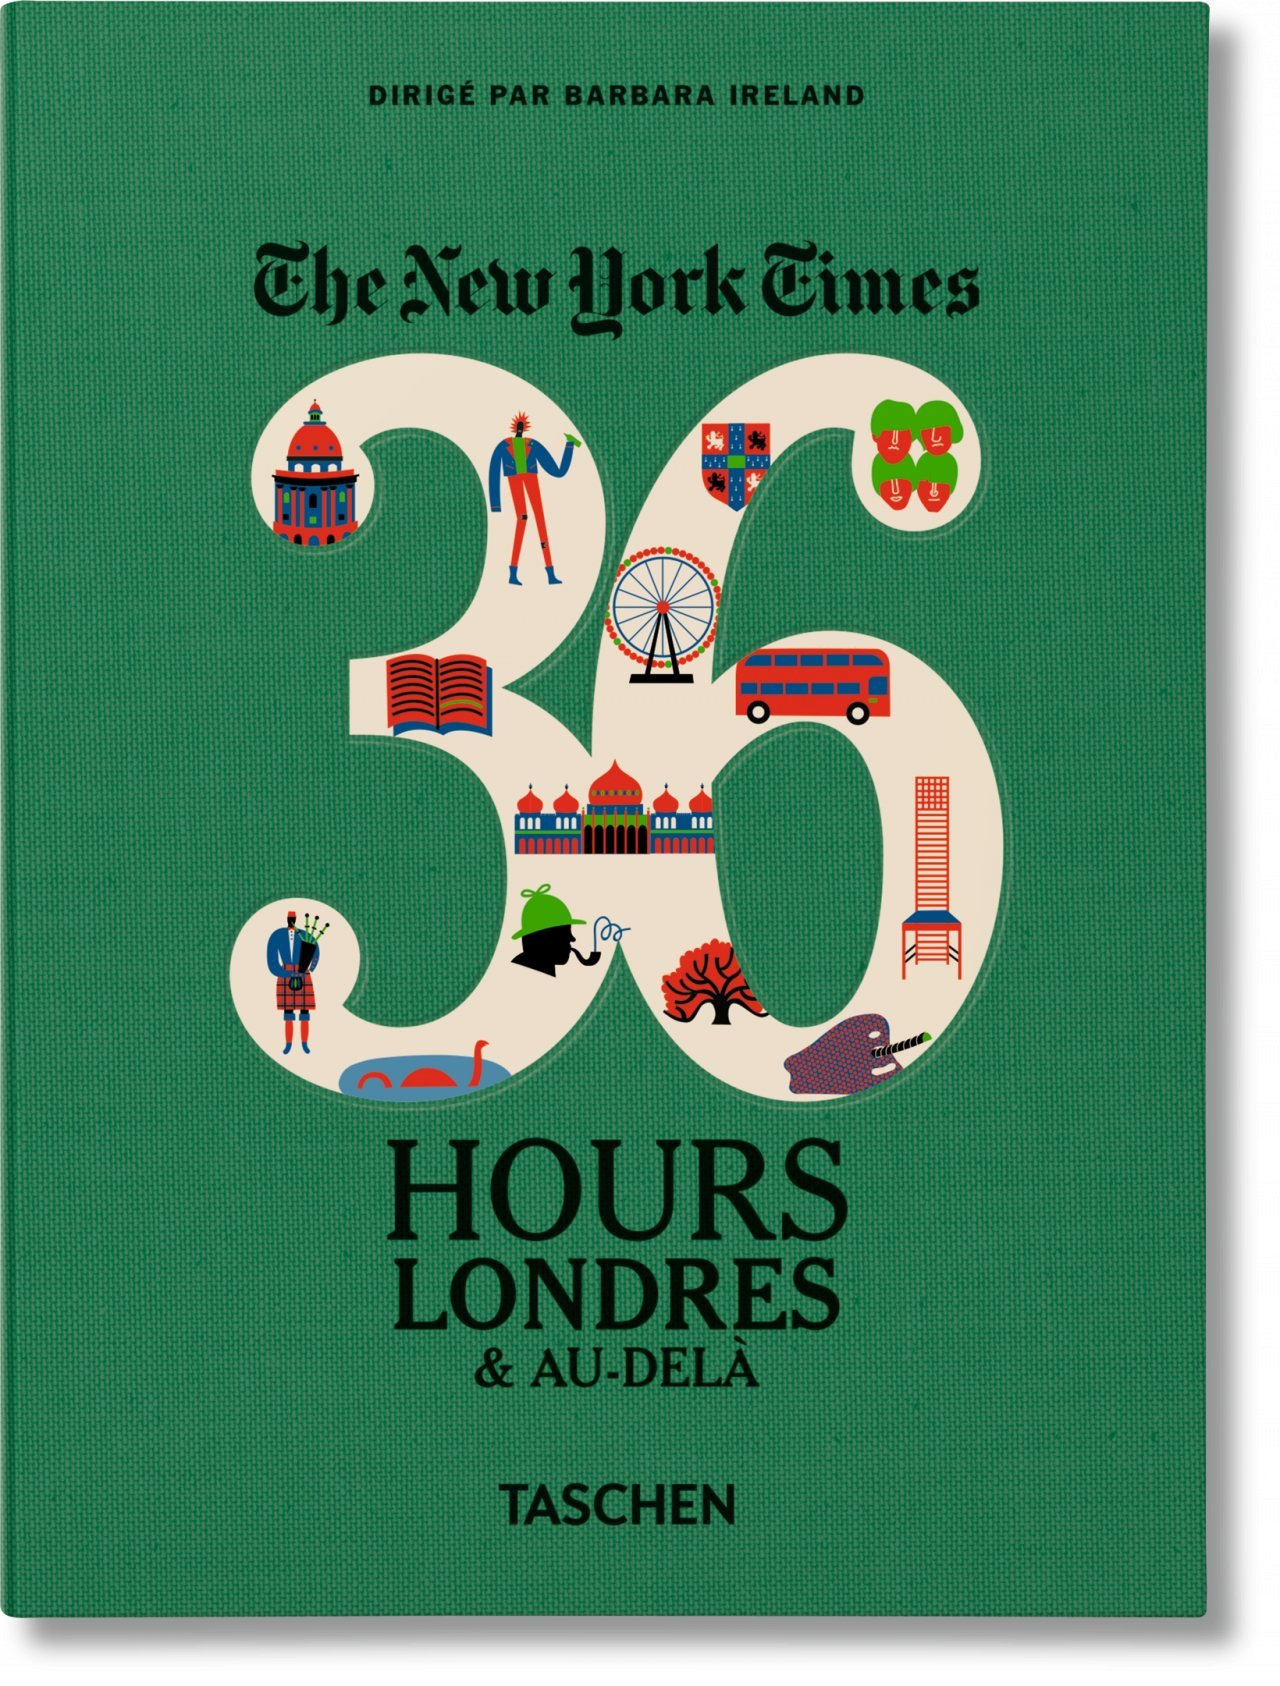 VA-THE NEW YORK TIME, 36 HOURS, LONDRES & AU-DELA